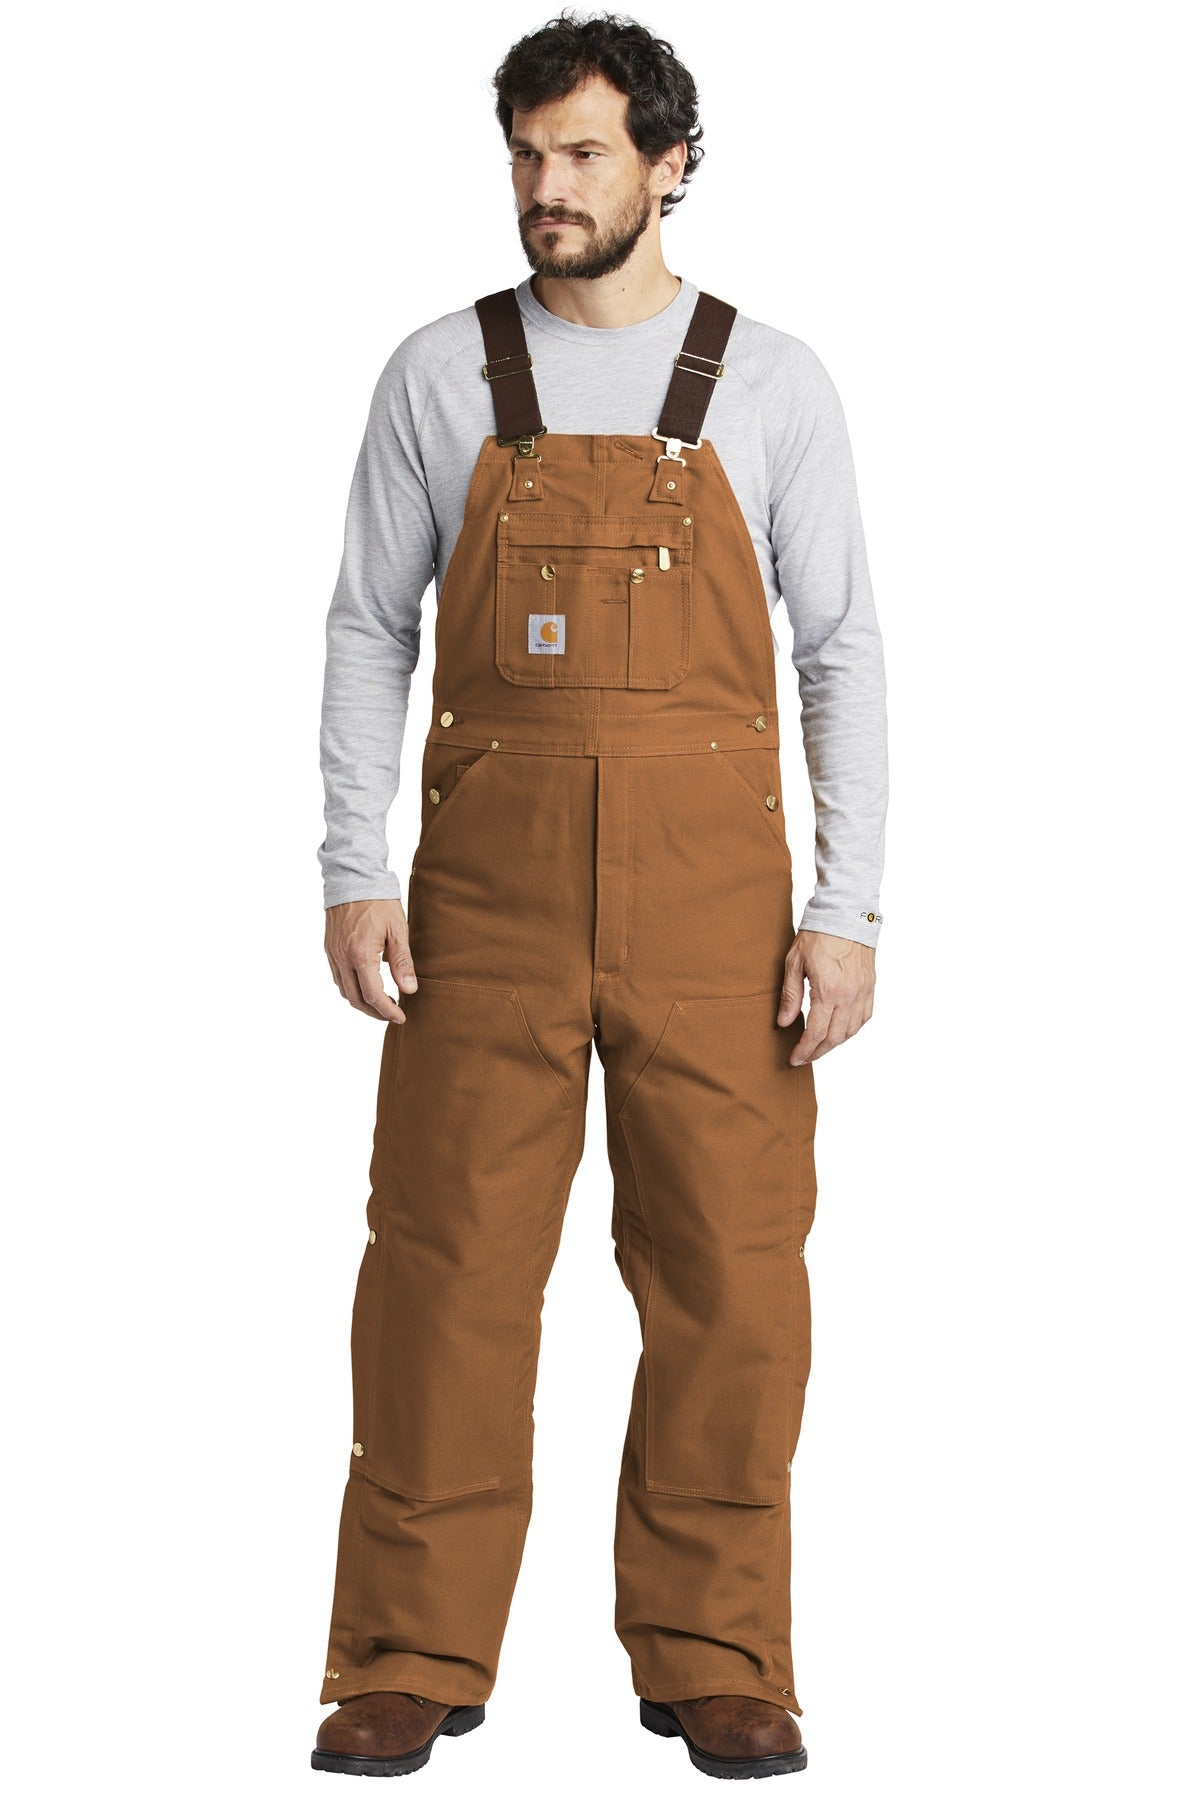 Carhartt ® Duck Quilt-Lined Zip-To-Thigh Bib Overalls. CTR41 - Aspire Zone